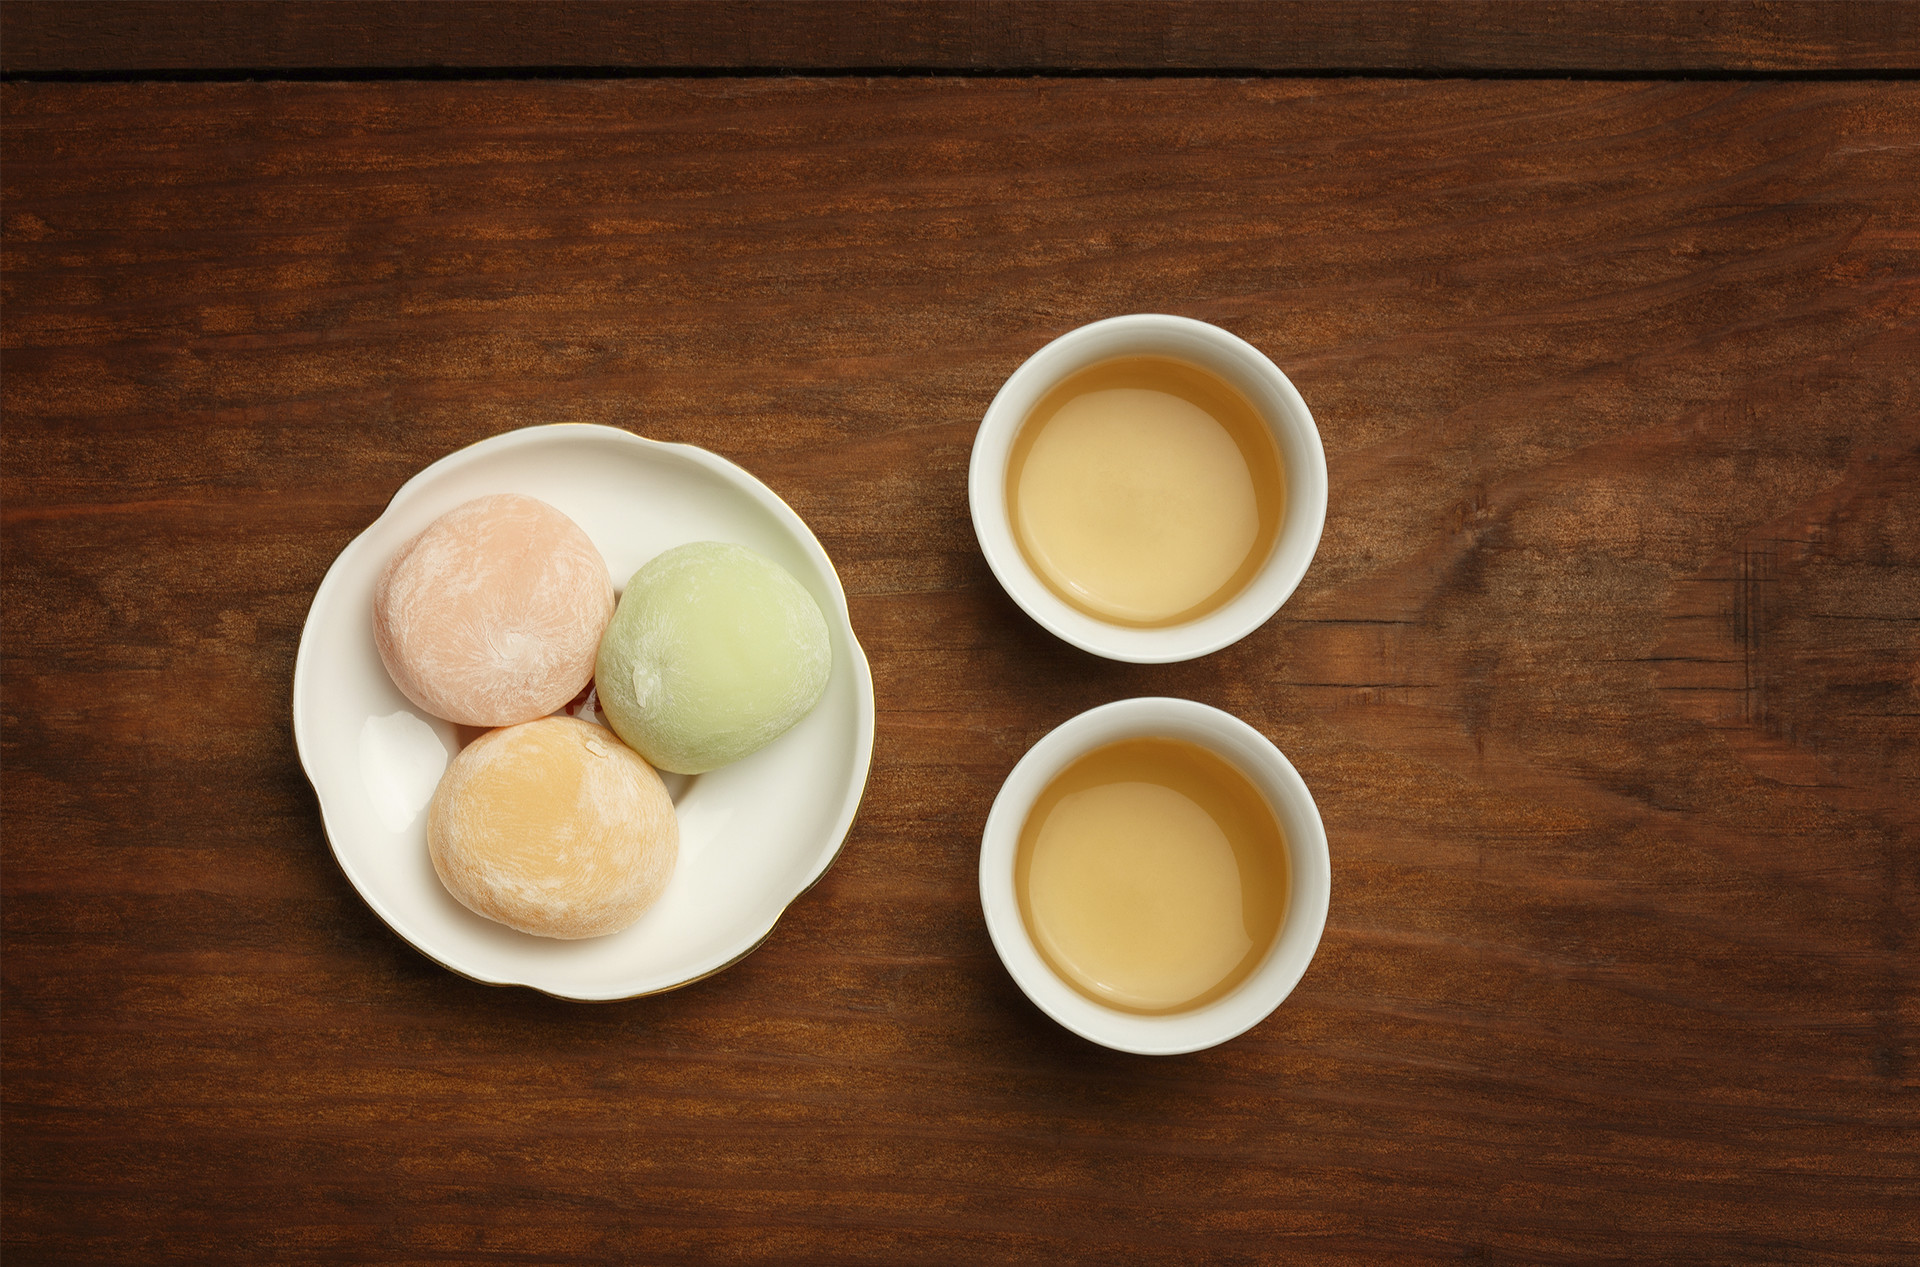 three mochi ice cream balls next to two cups of tea for a tasty pairing